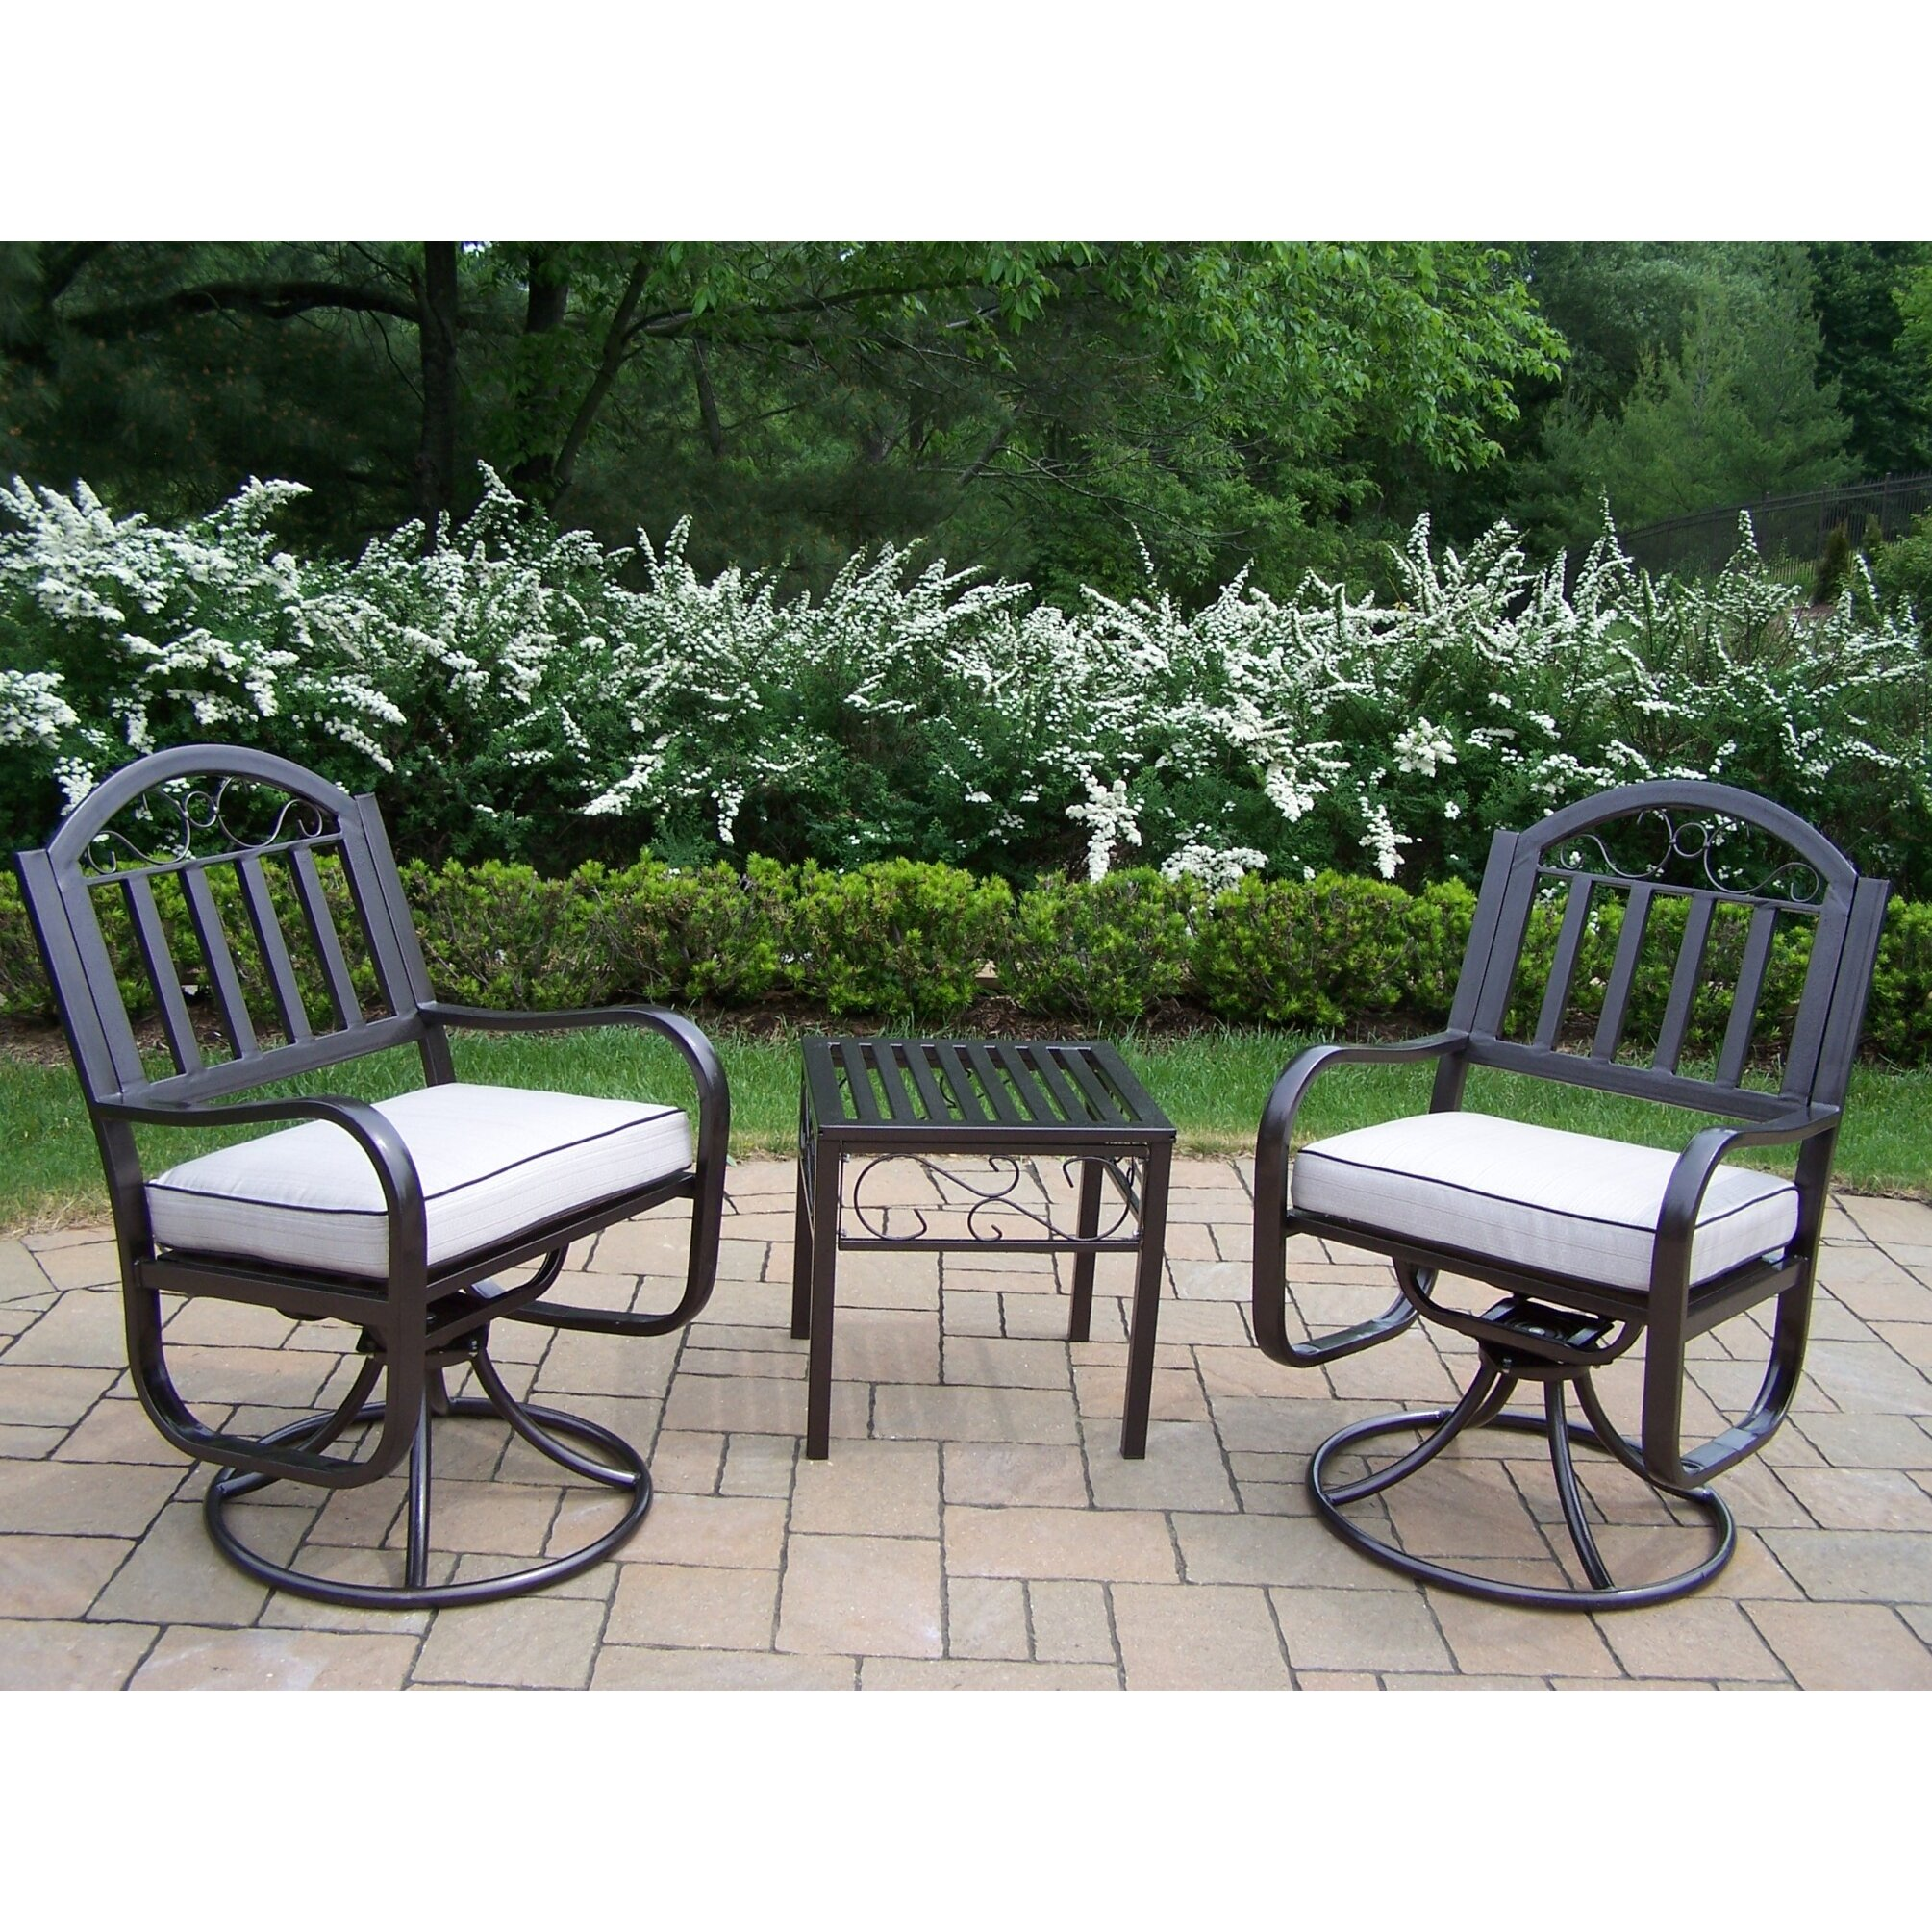 Outdoor Patio Furniture Rochester Ny: Rochester 3-Piece Swivel Chair Set